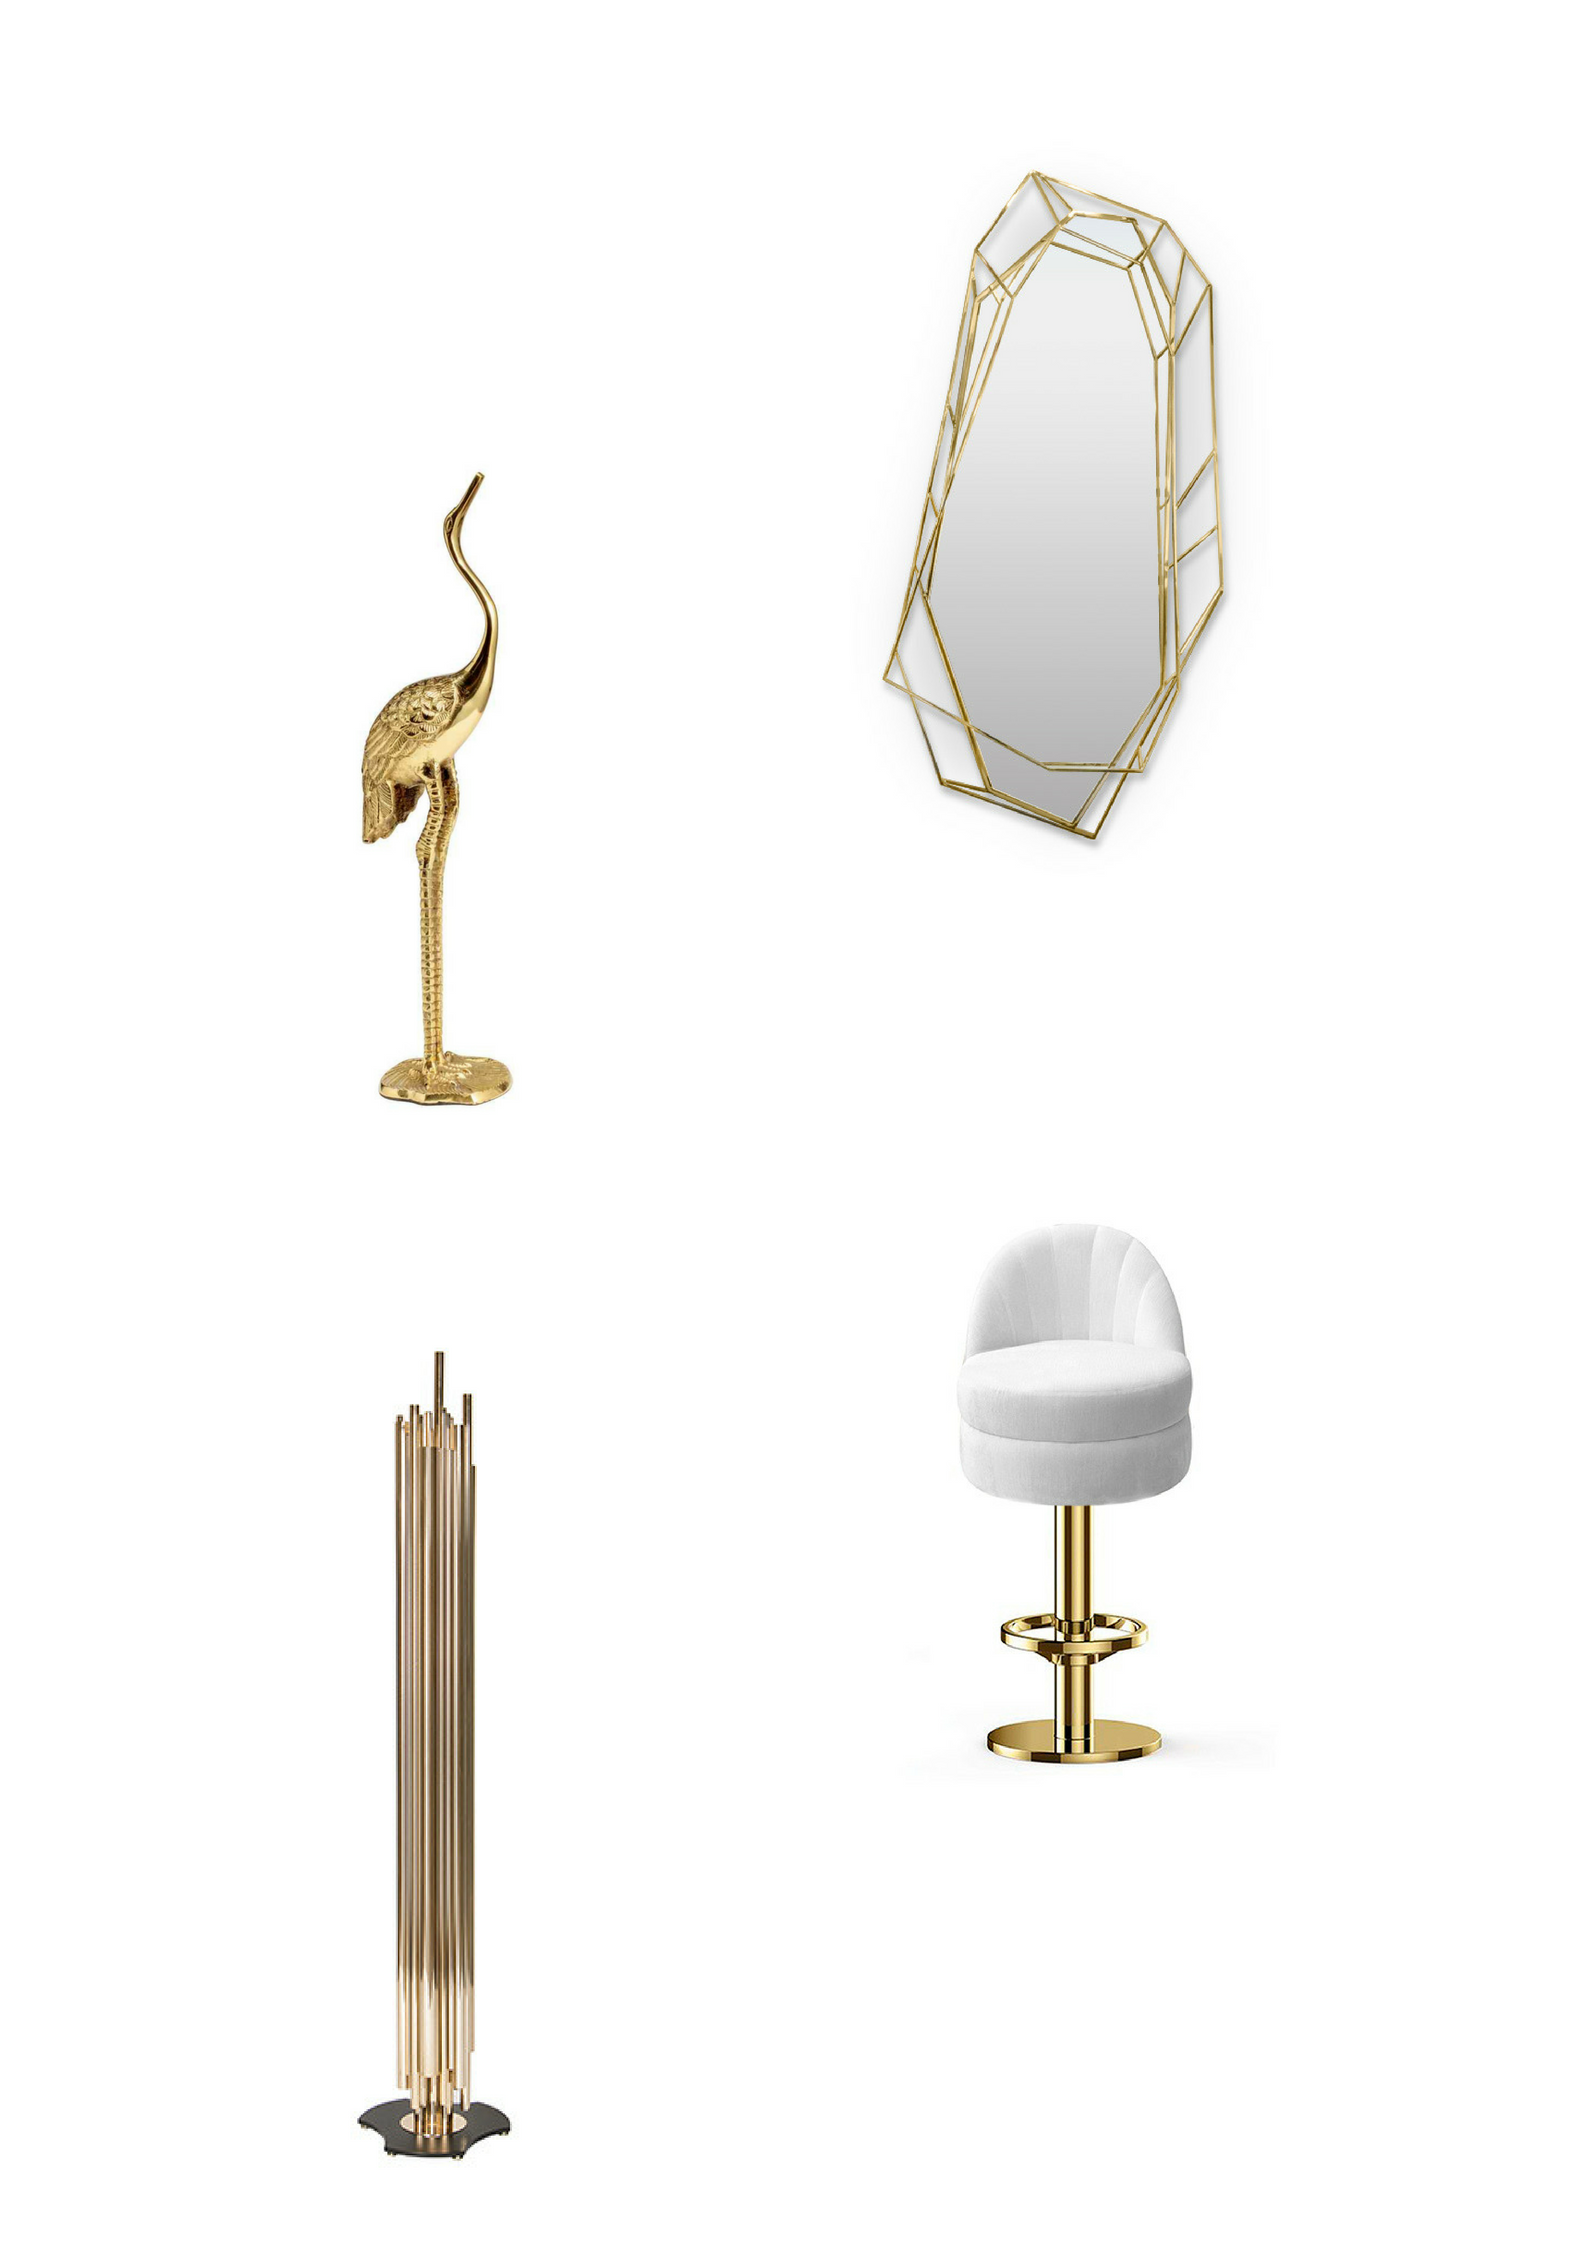 Moodboard Feel Inspired By This Brass Trend 2017 brass trend 2017 Moodboard: Feel Inspired By This Brass Trend 2017 Design sem nome 6